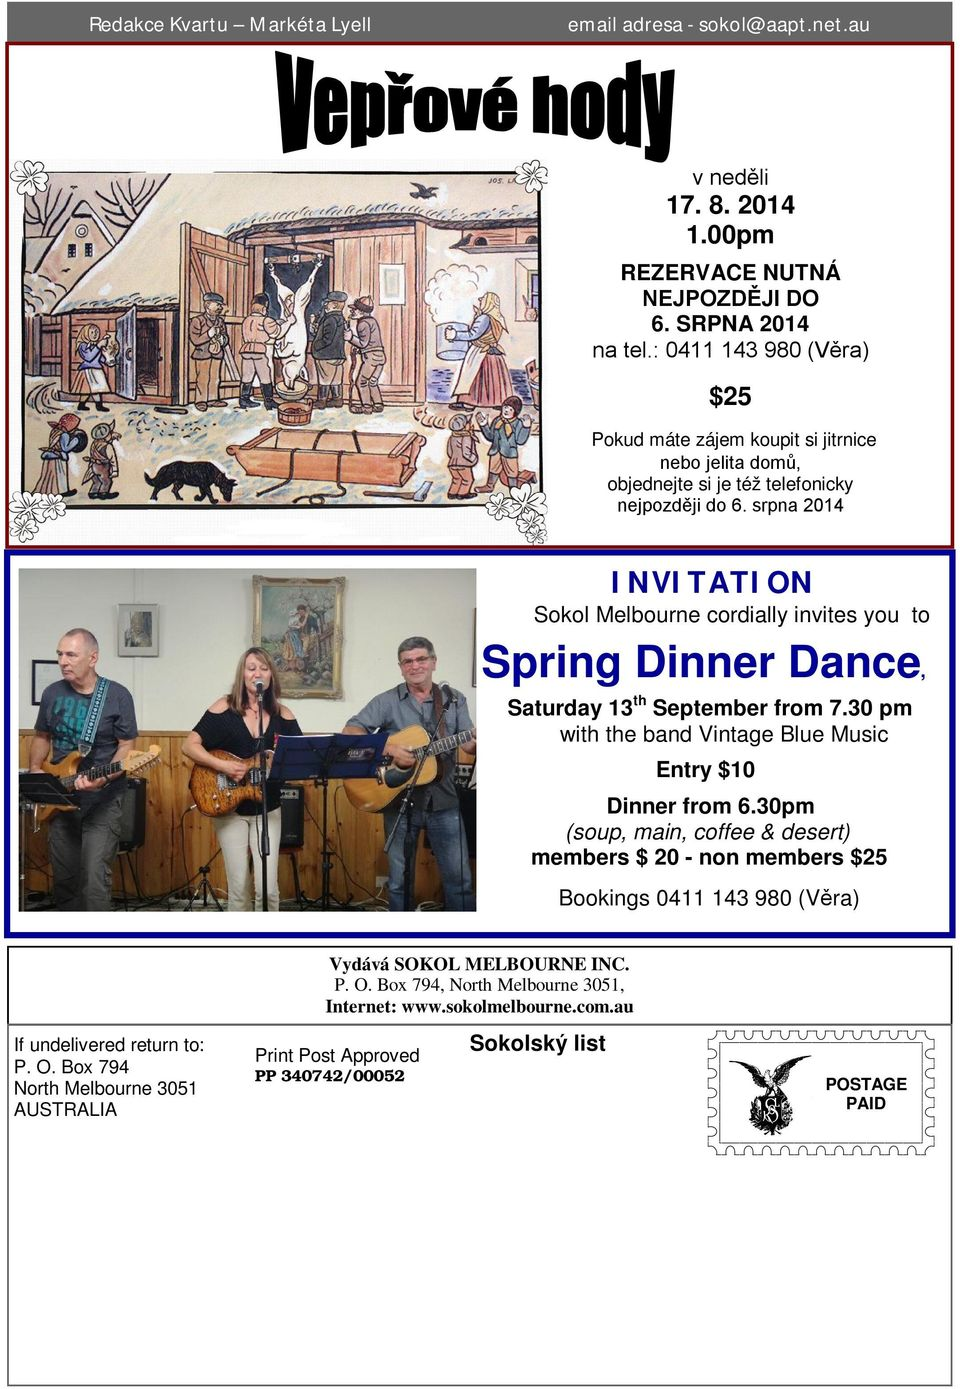 srpna 2014 INVITATION Sokol Melbourne cordially invites you to Spring Dinner Dance, Saturday 13 th September from 7.30 pm with the band Vintage Blue Music Entry $10 Dinner from 6.